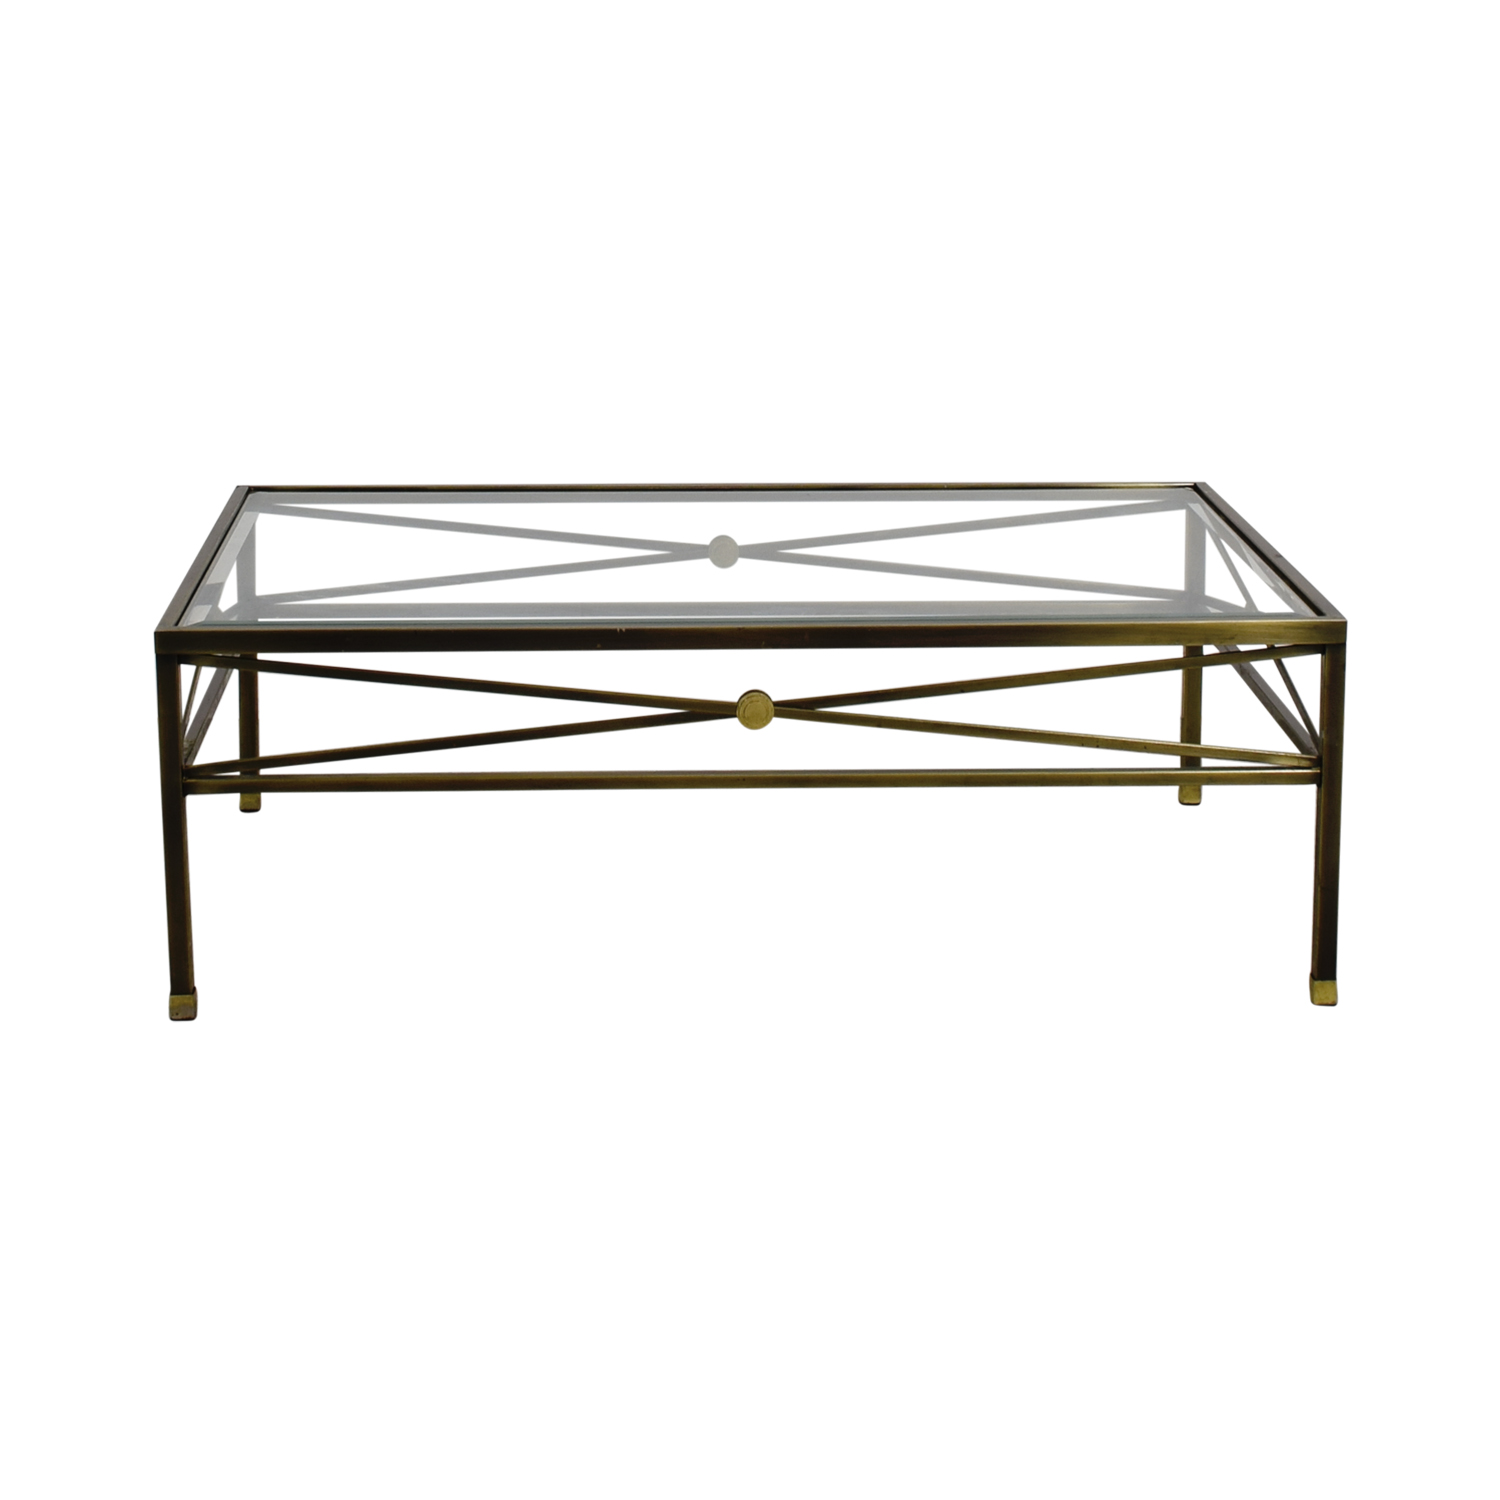 Macys Macys Glass and Brass Coffee Table gold